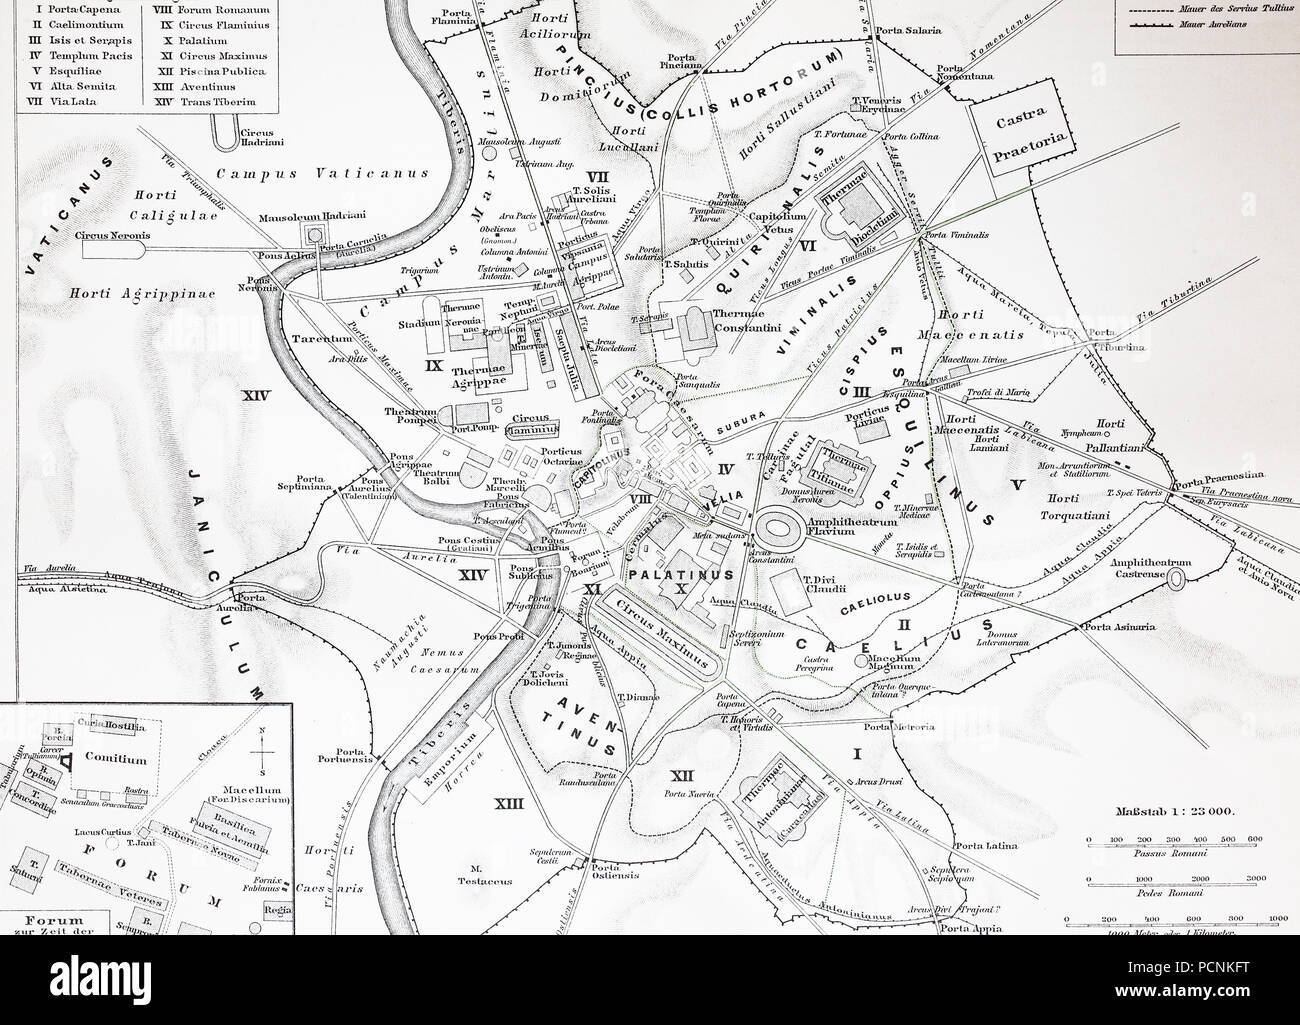 map of the historical Rome, Italy, digital improved reproduction of an historical image from the year 1885 - Stock Image